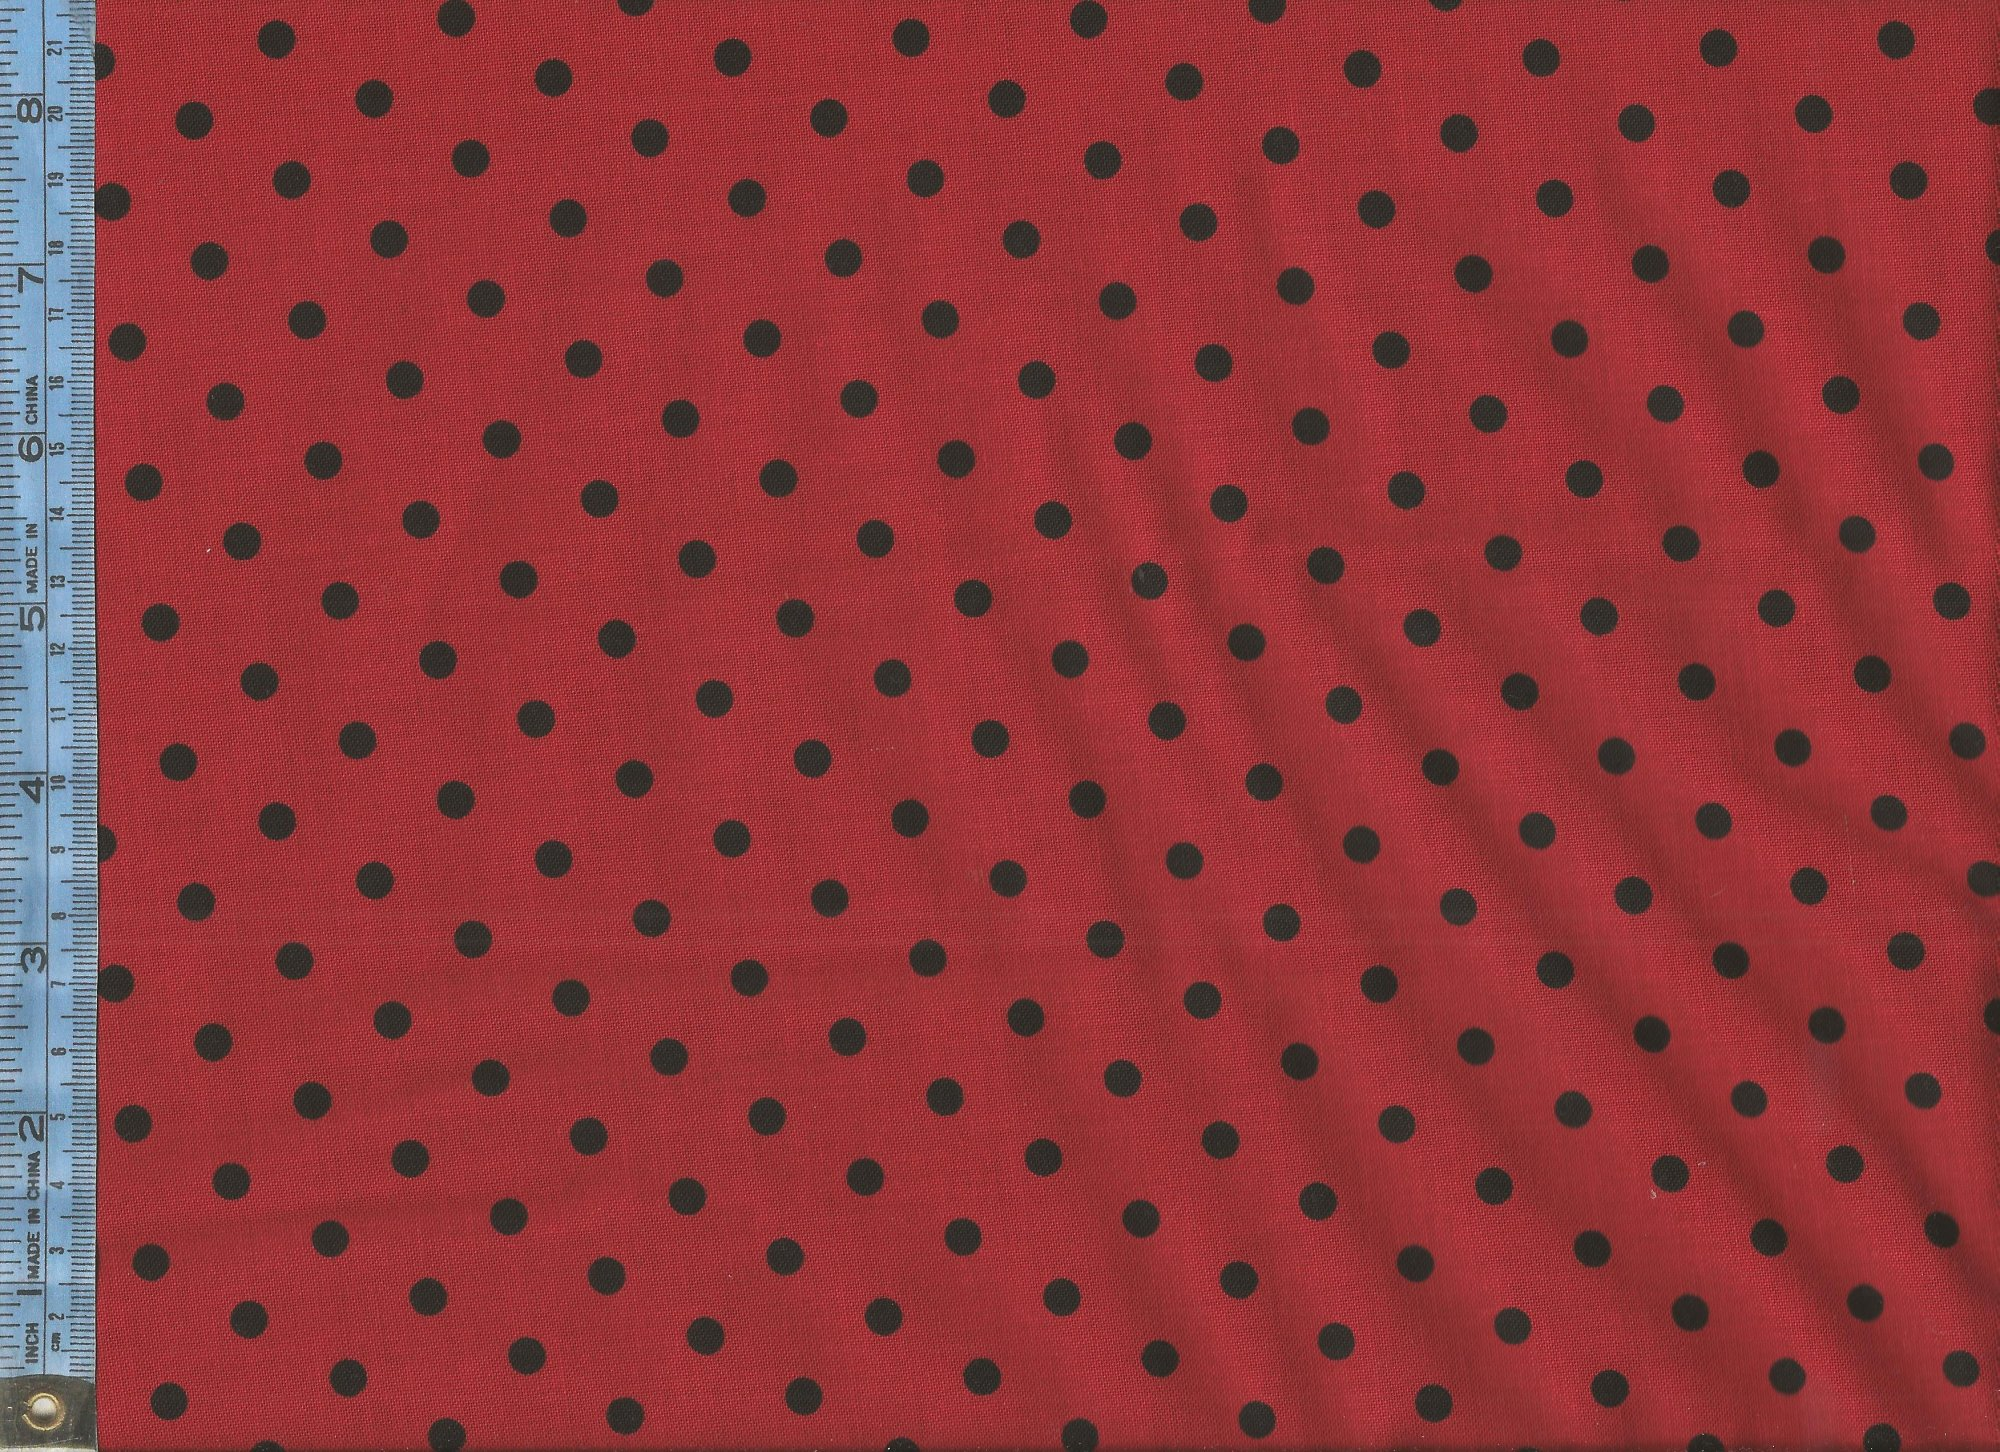 Dotsy - (8026-088-red) black dots on red background